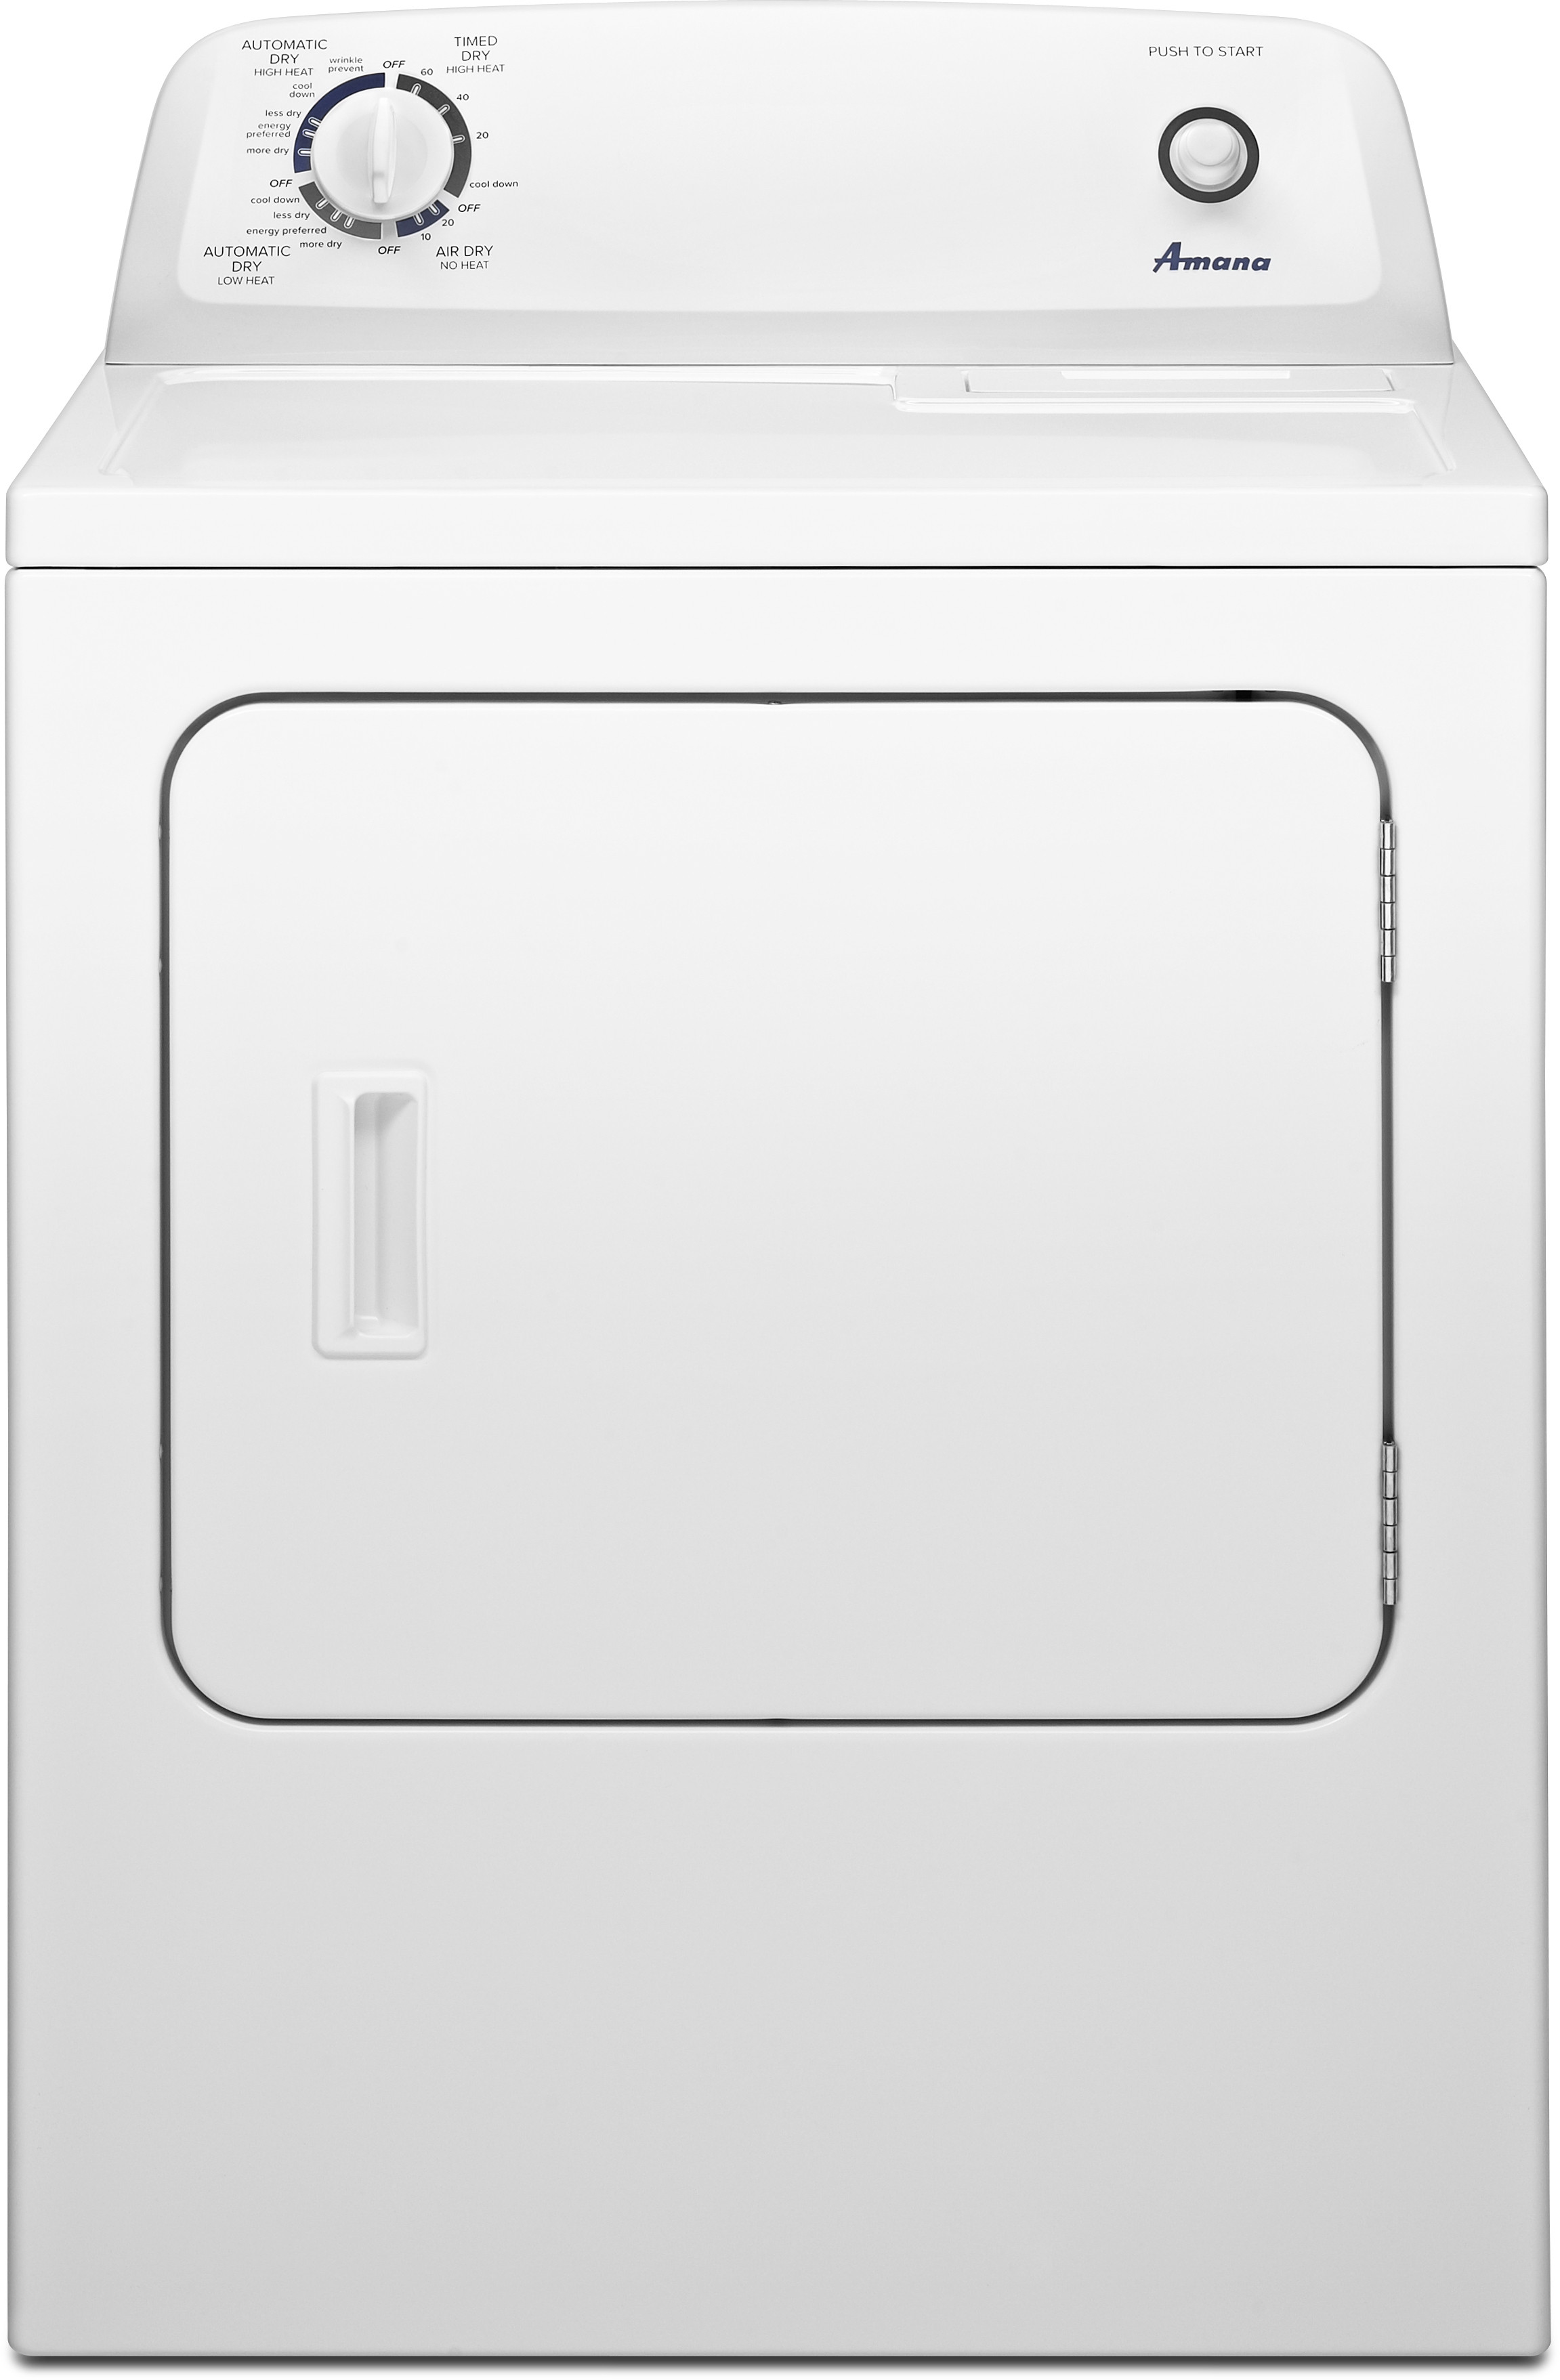 amana ned4655ew 29 inch 6 5 cu  ft  electric dryer with 11 dry cycles, 3  temperature settings, wrinkle prevent option and automatic dryness control